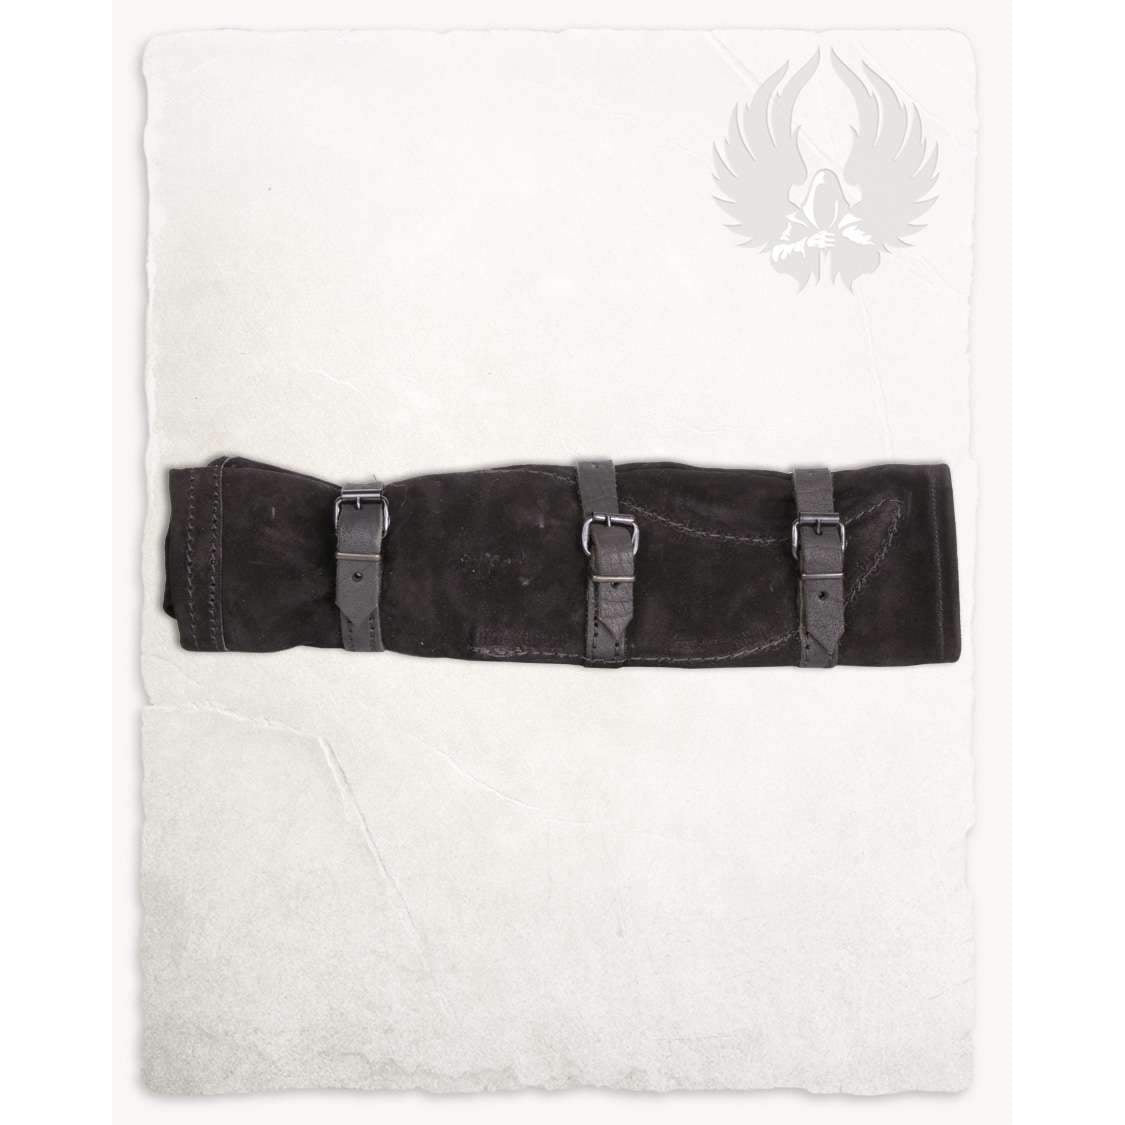 Anselm rollup pouch